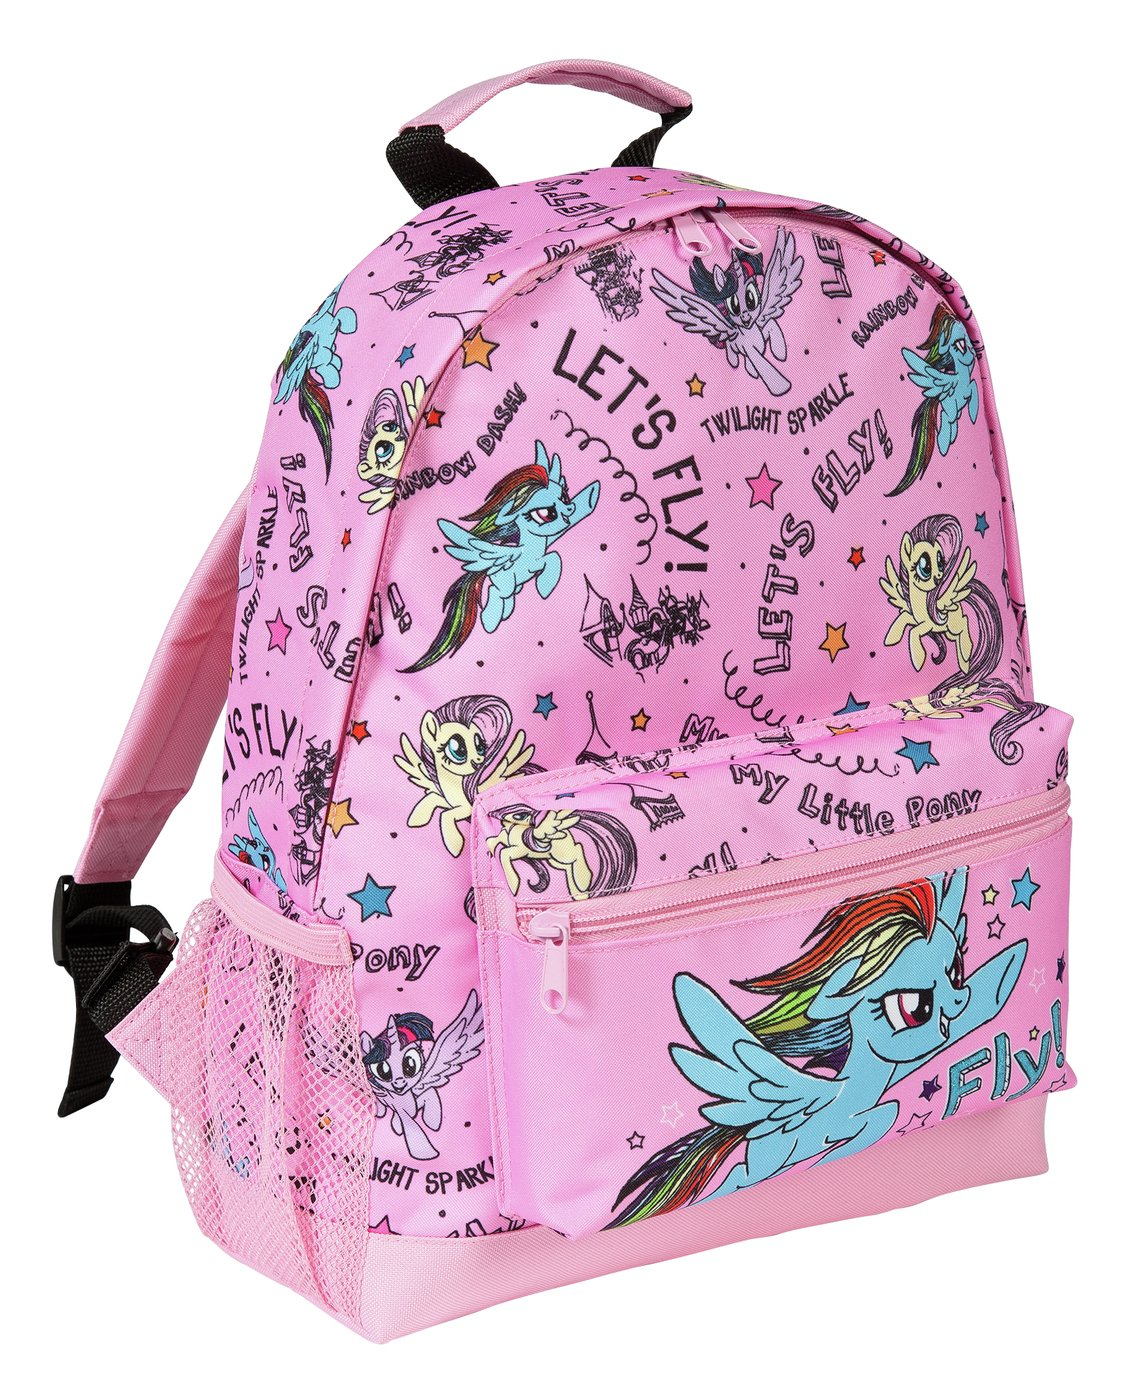 Image of My Little Pony Backpack - Pink